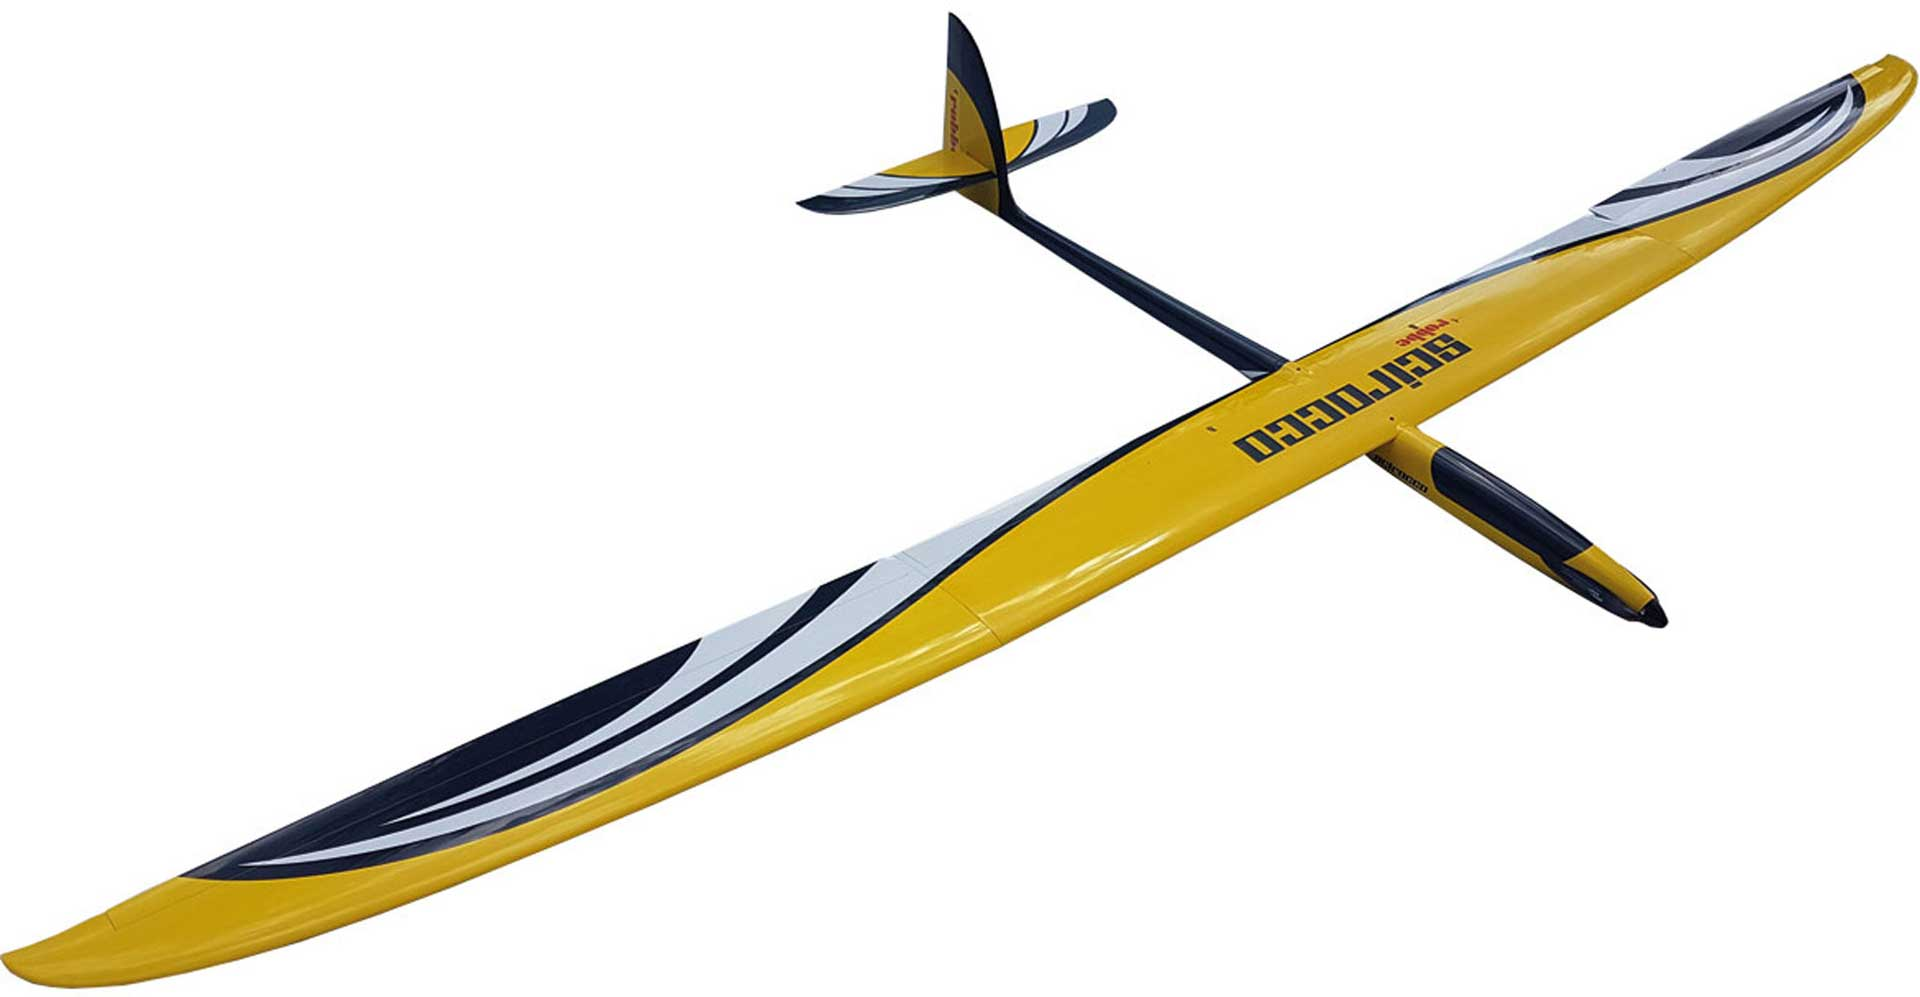 ROBBE SCIROCCO 4,0 M PNP FULL-GRP HIGH PERFORM ANCE SAILPLANE